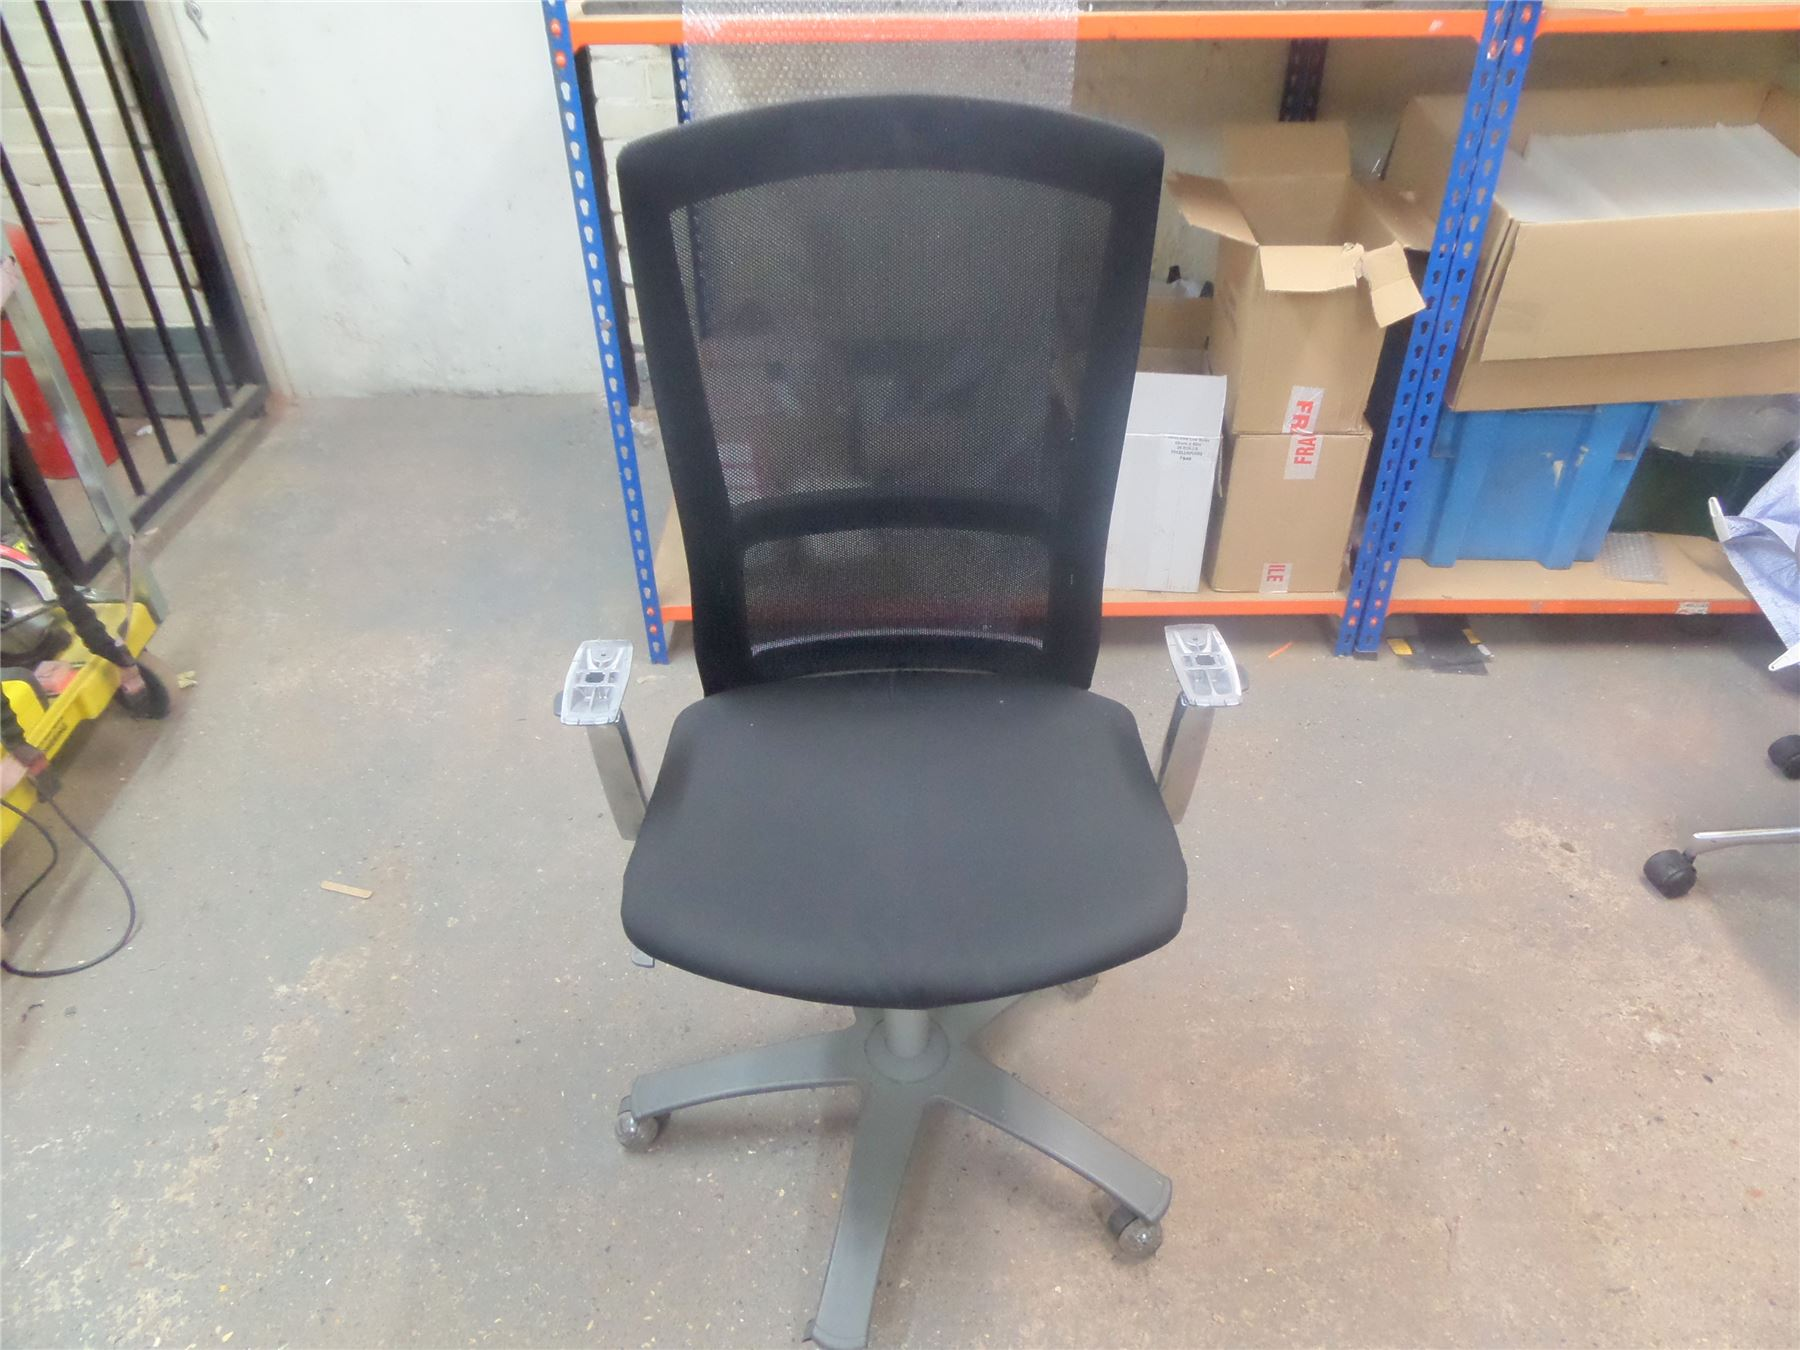 Knoll life ergonomic office chair missing arm rests ebay - Knoll life chair parts ...